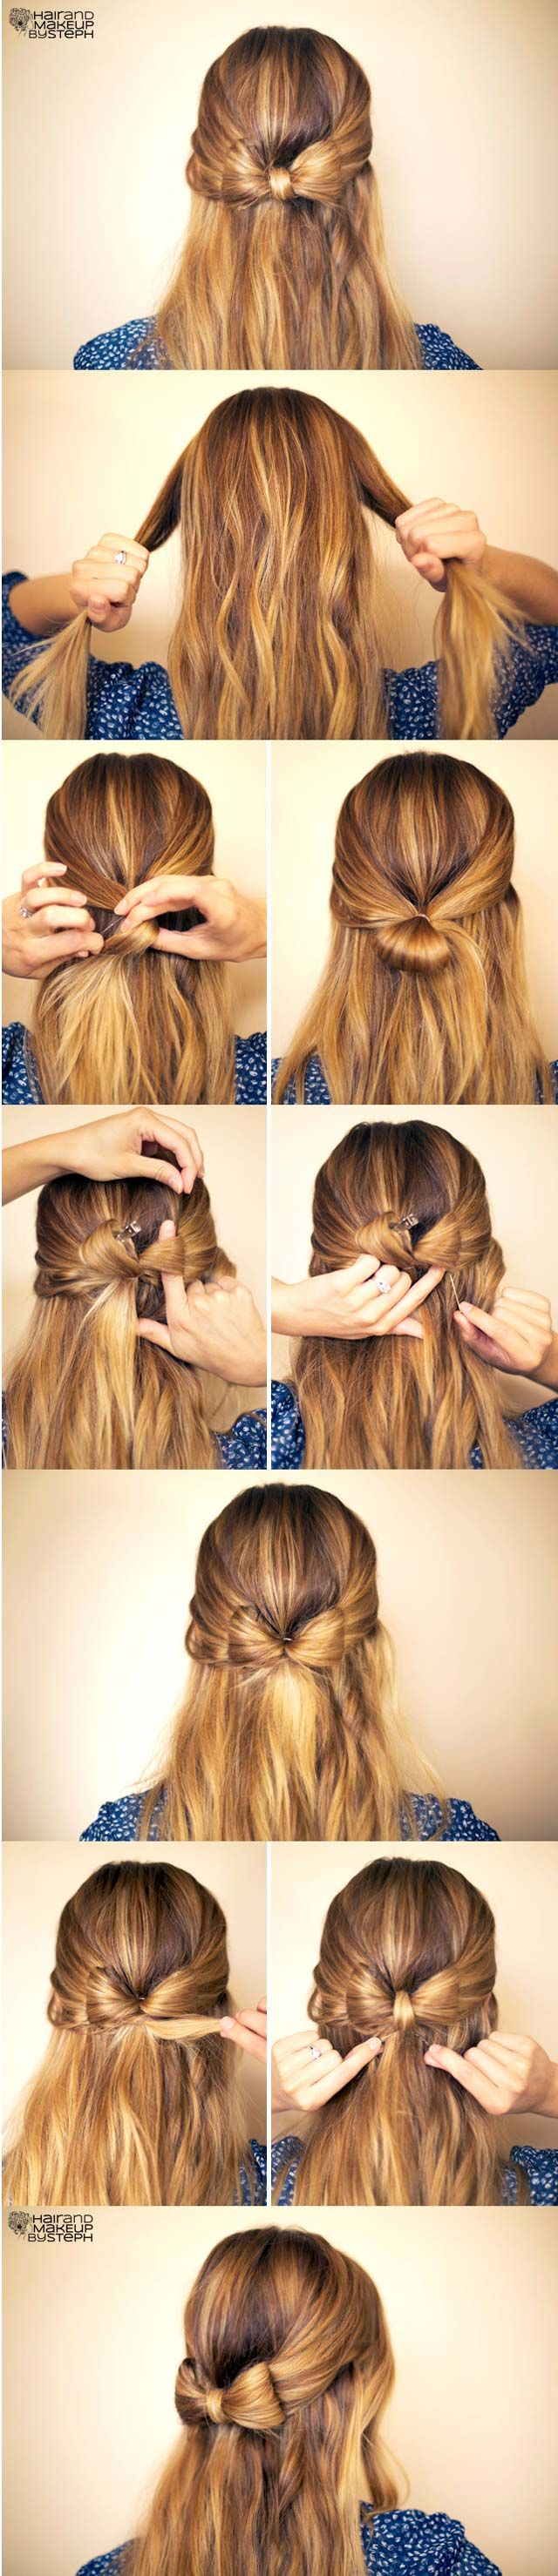 Diy Your Step By Step For The Best Cute Hairstyles Hair Styles Long Hair Styles Hair Makeup